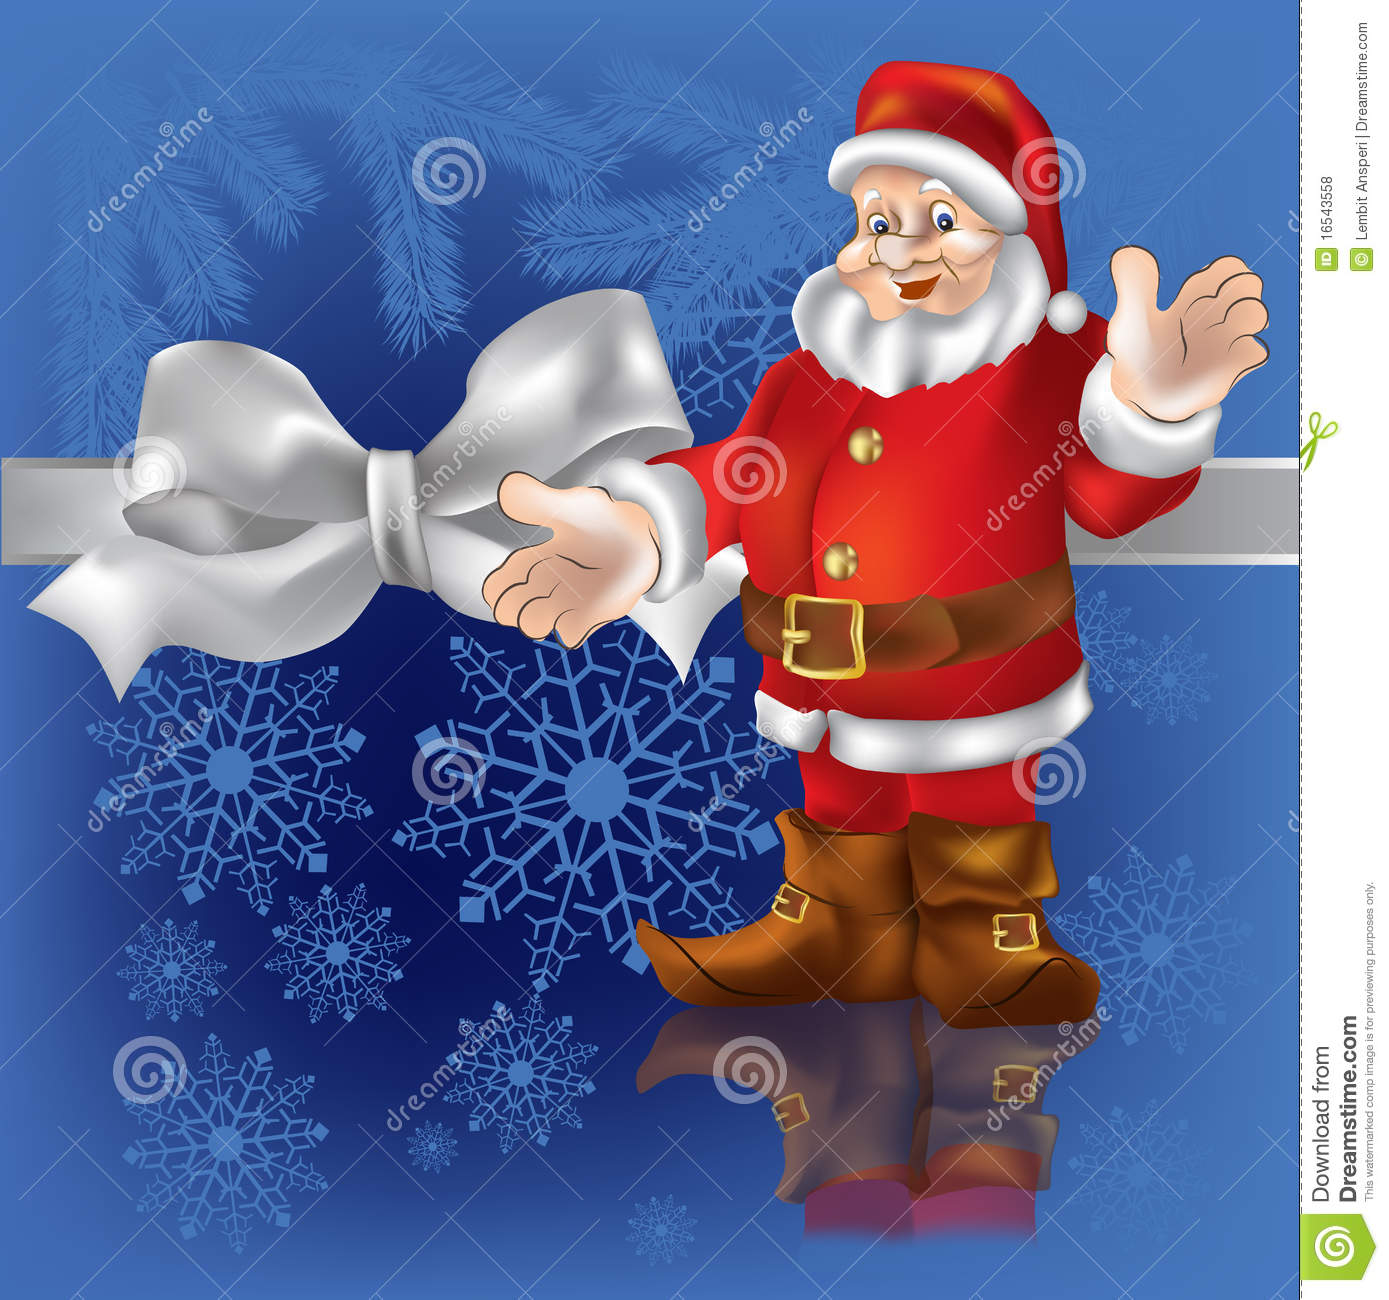 christmas gift santa claus on a blue royalty free stock photos